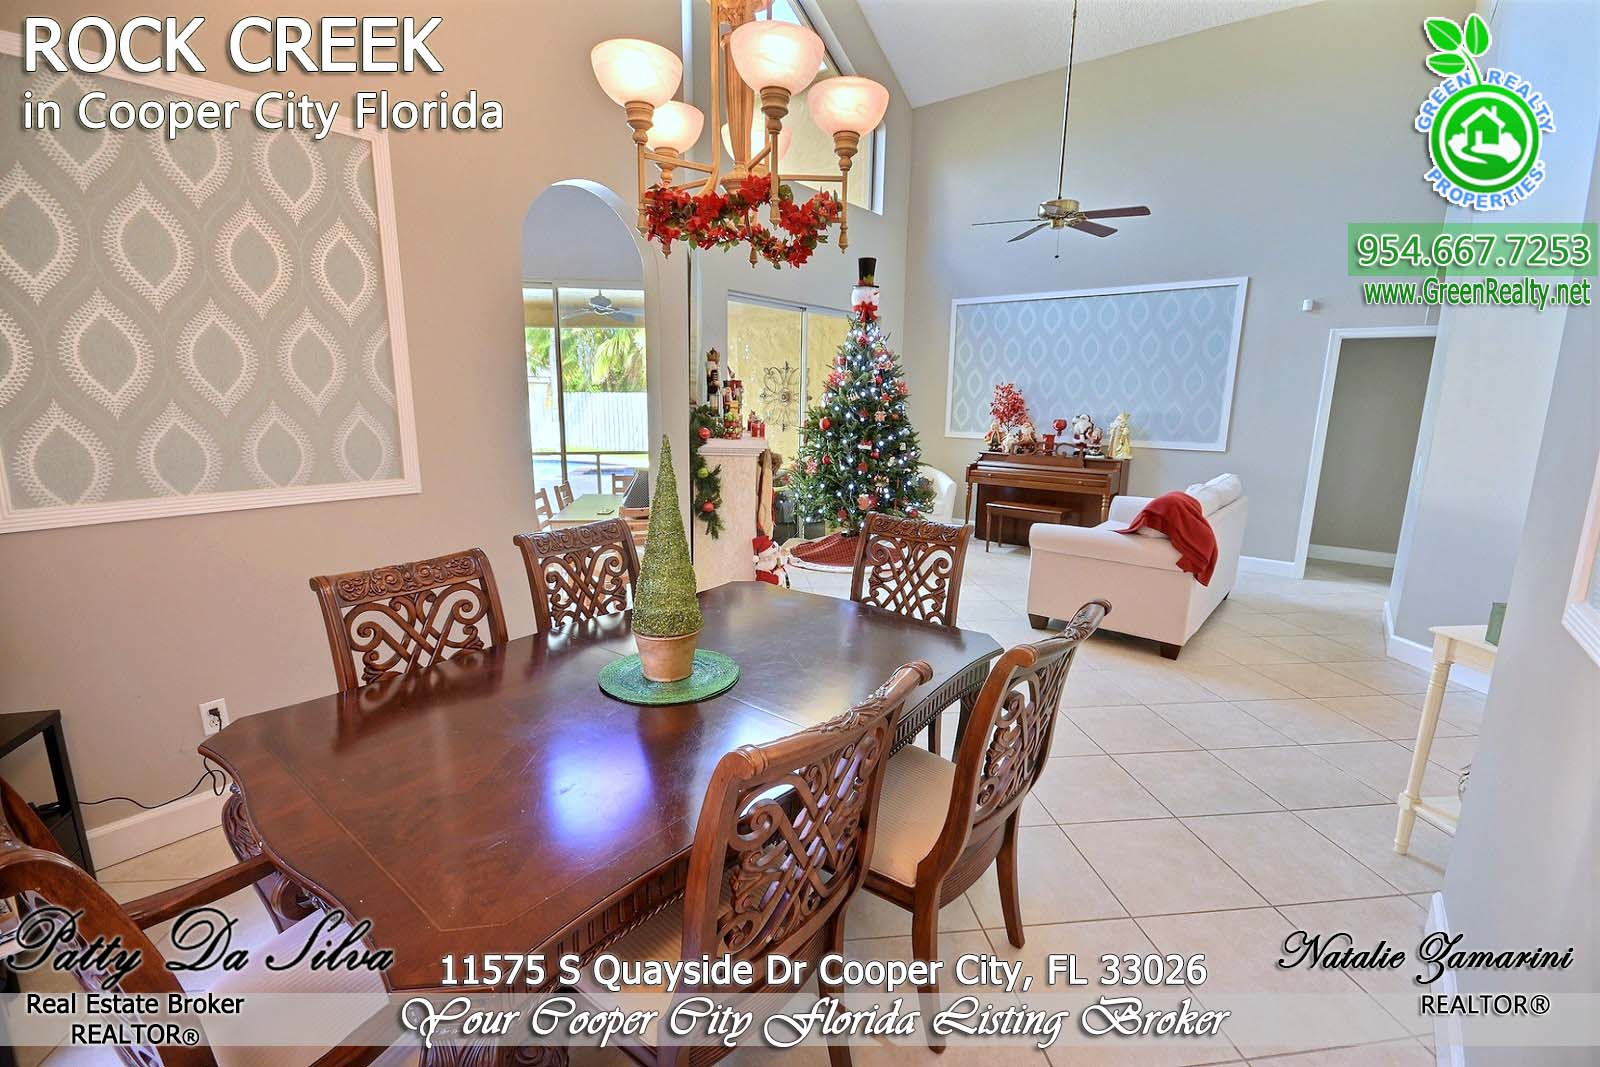 9 Quaypoint - Rock Creek Cooper City Homes For Sale (20)